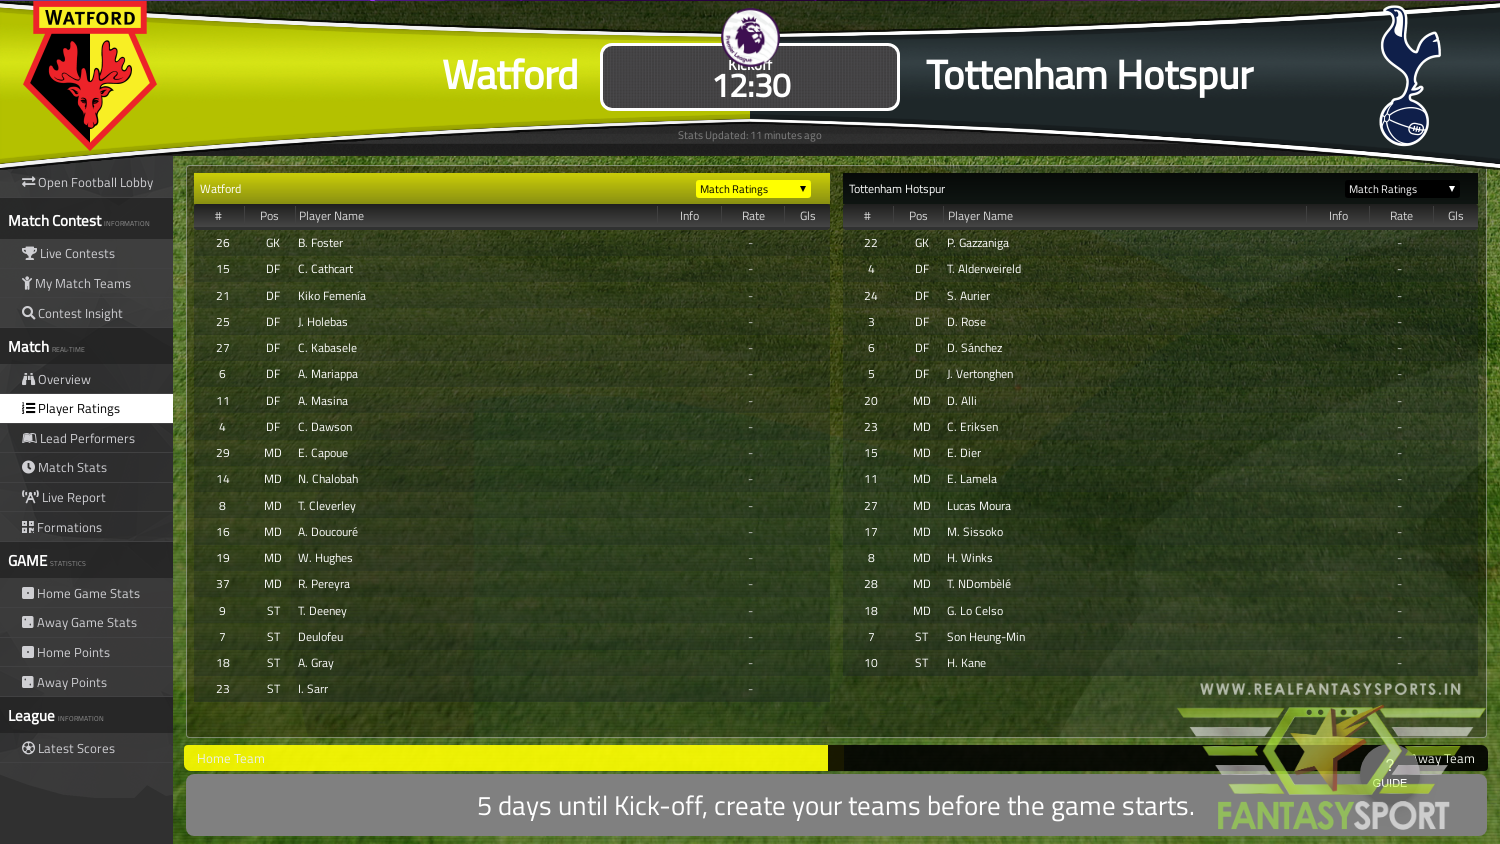 Fantasy Football Watford Vs Tottenham Hotspur